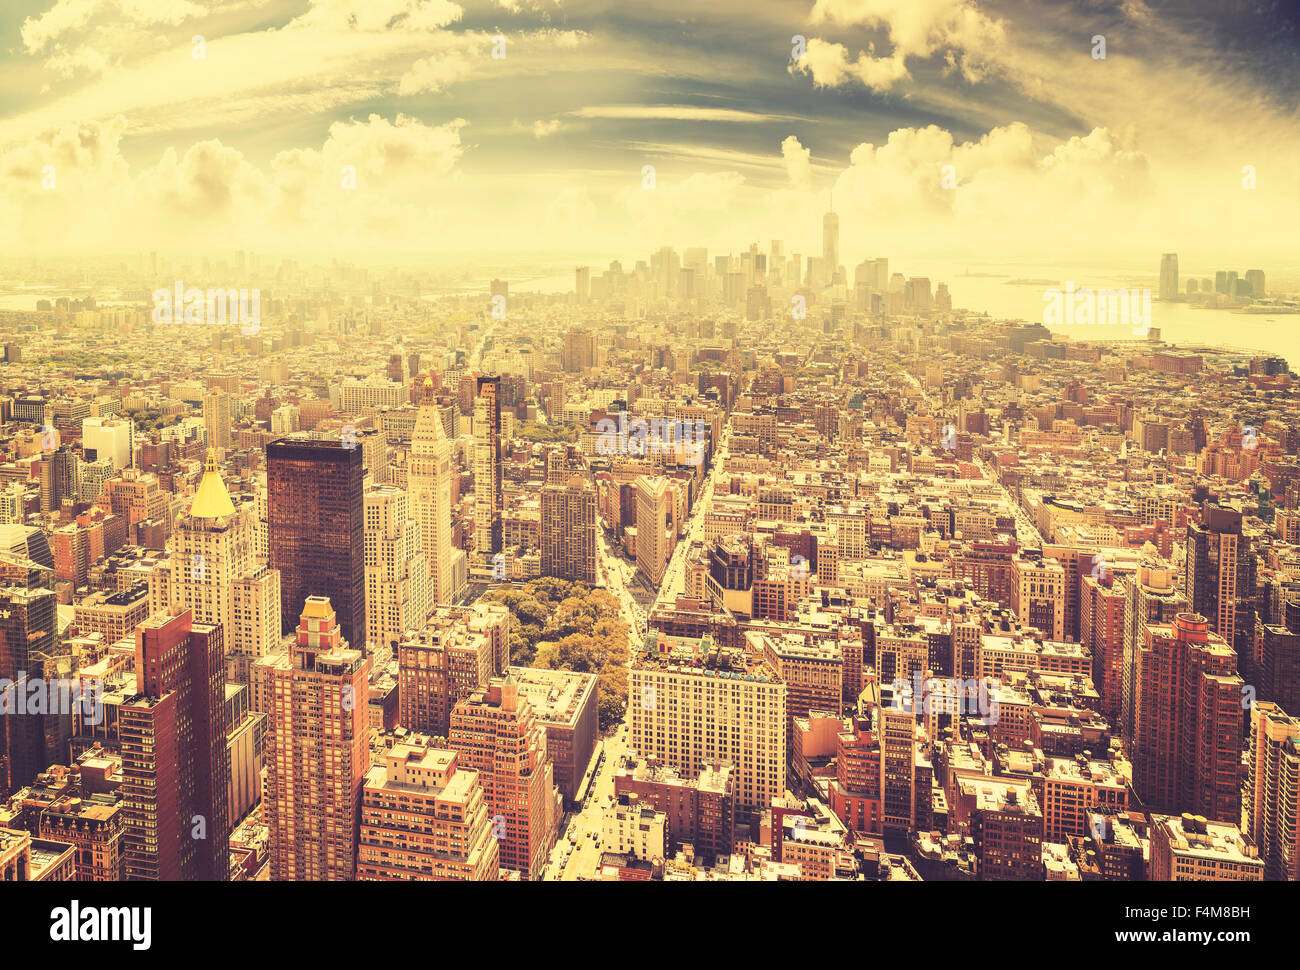 Vintage getönten Skyline von Manhattan, New York City, USA. Stockbild